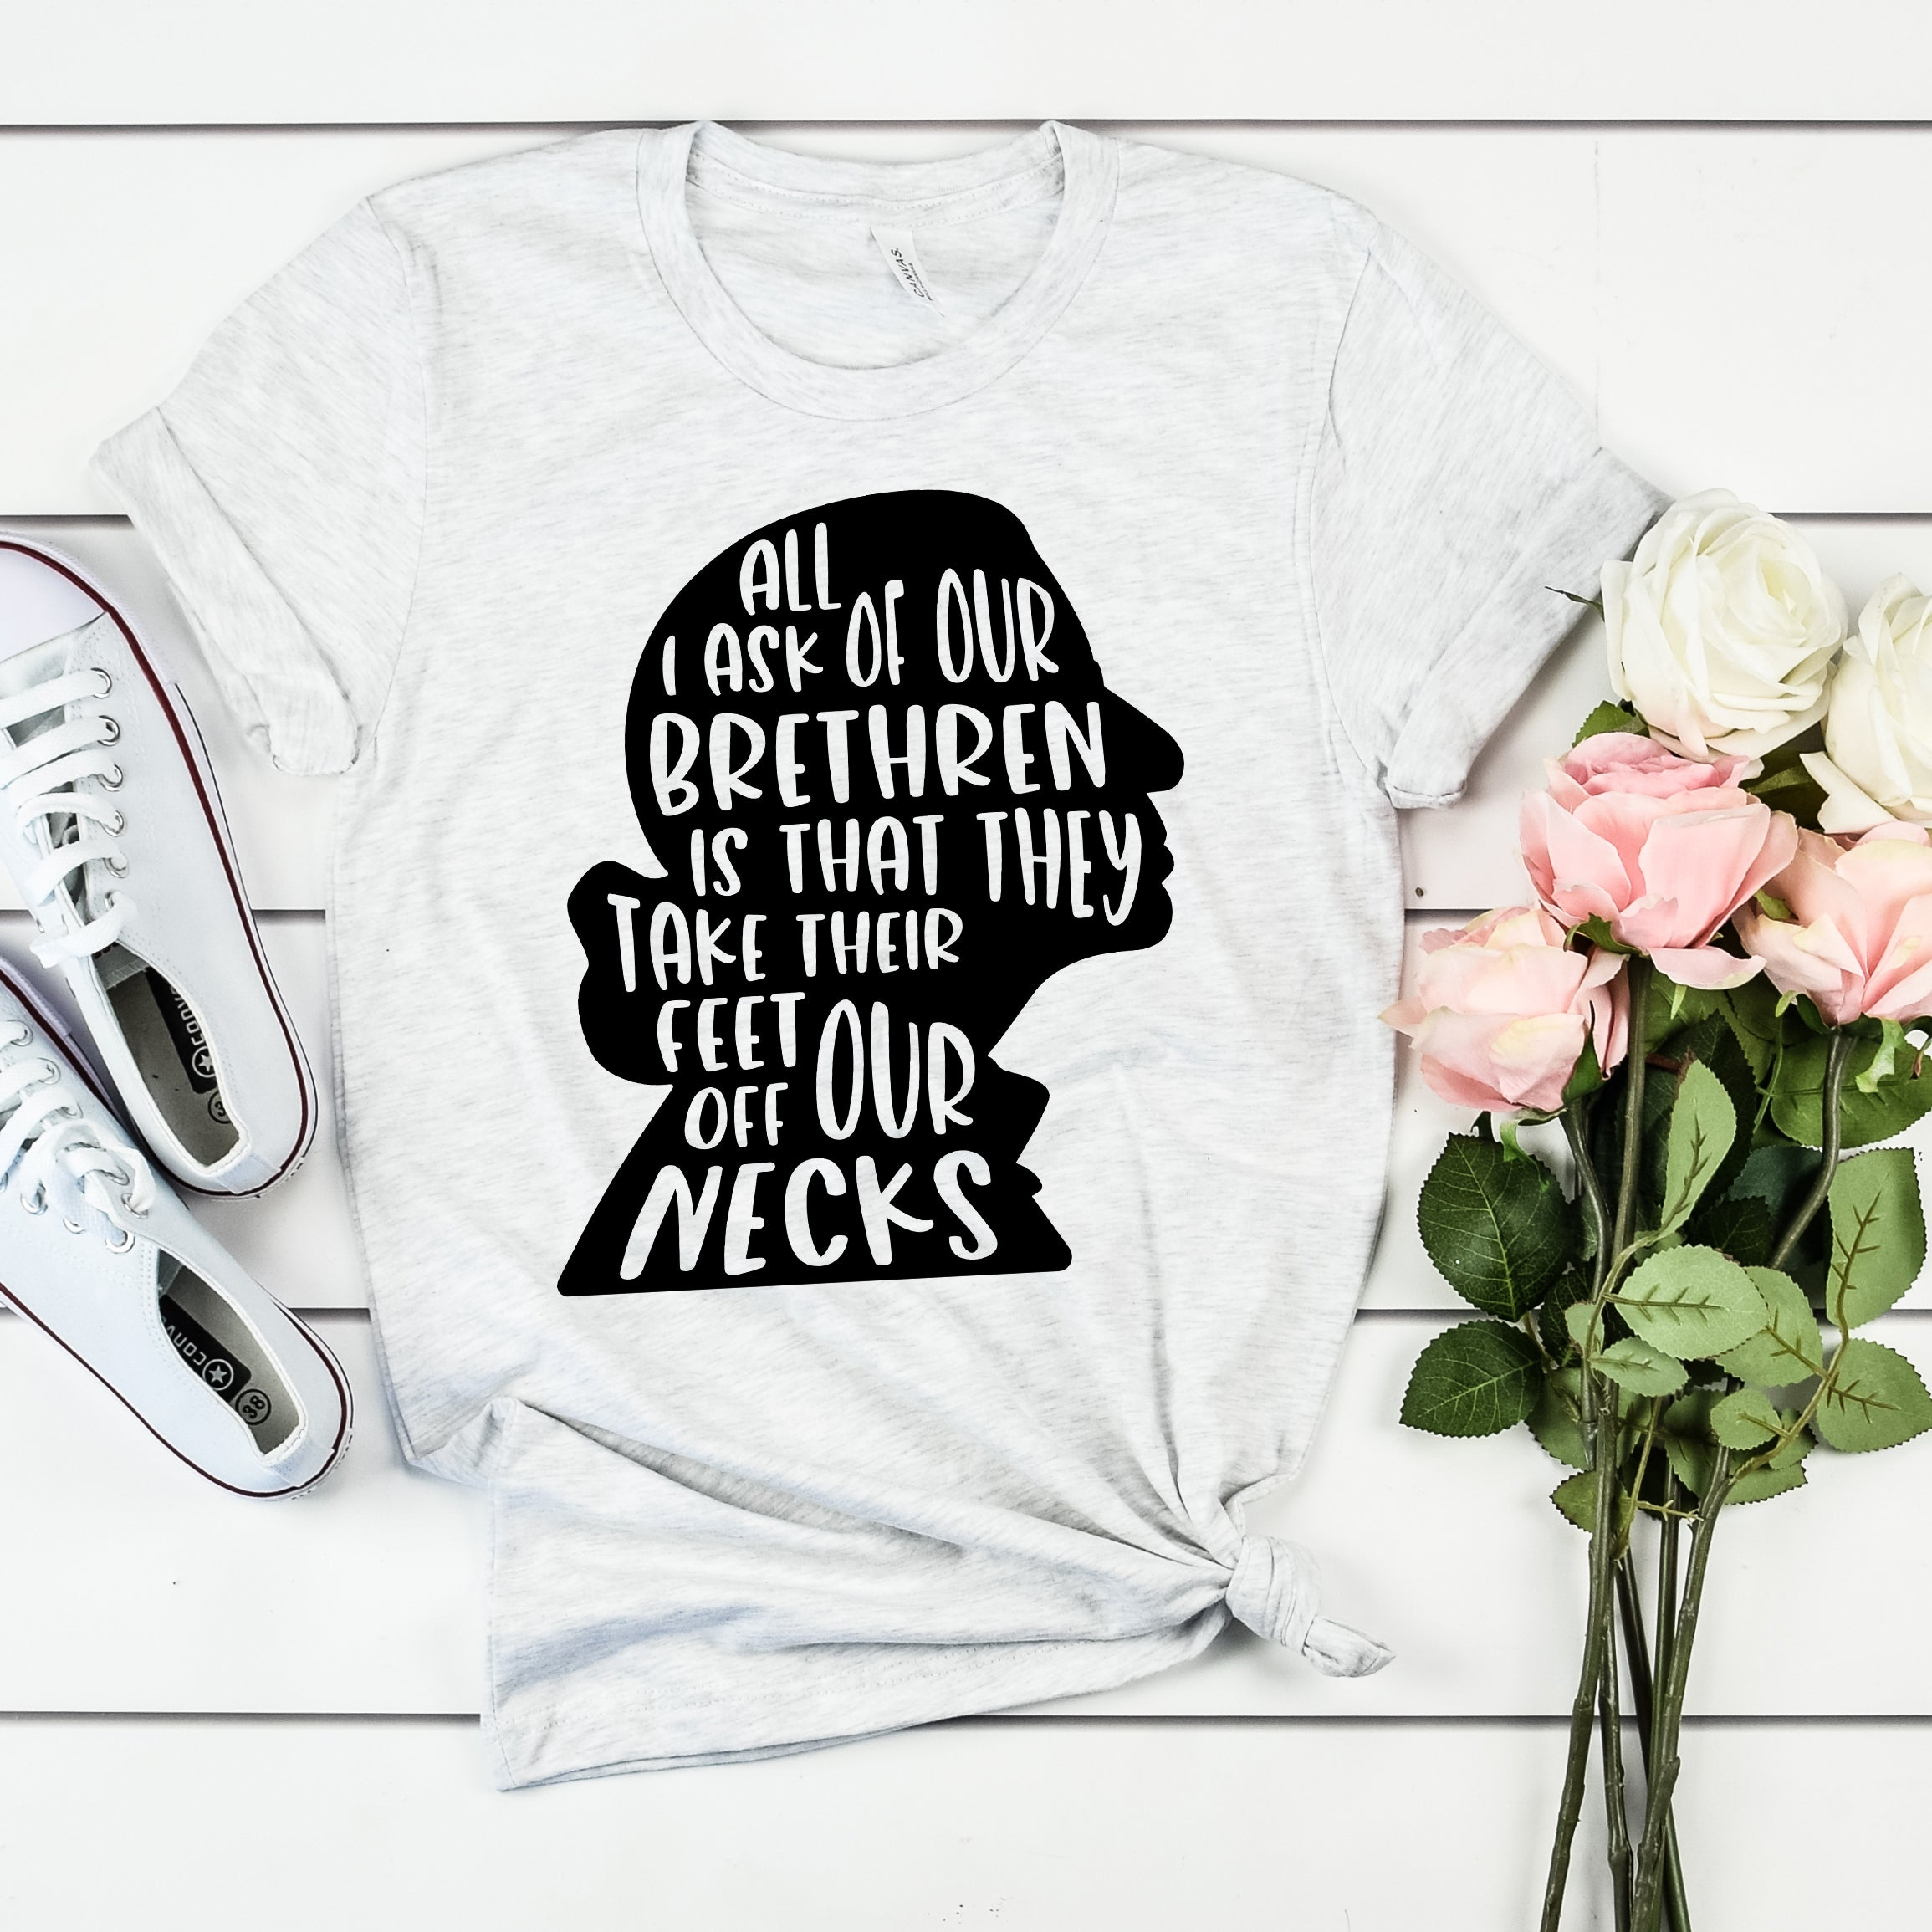 Ruth Bader Ginsburg Shirt - RBG Shirt - Feet Off Our Necks Shirt